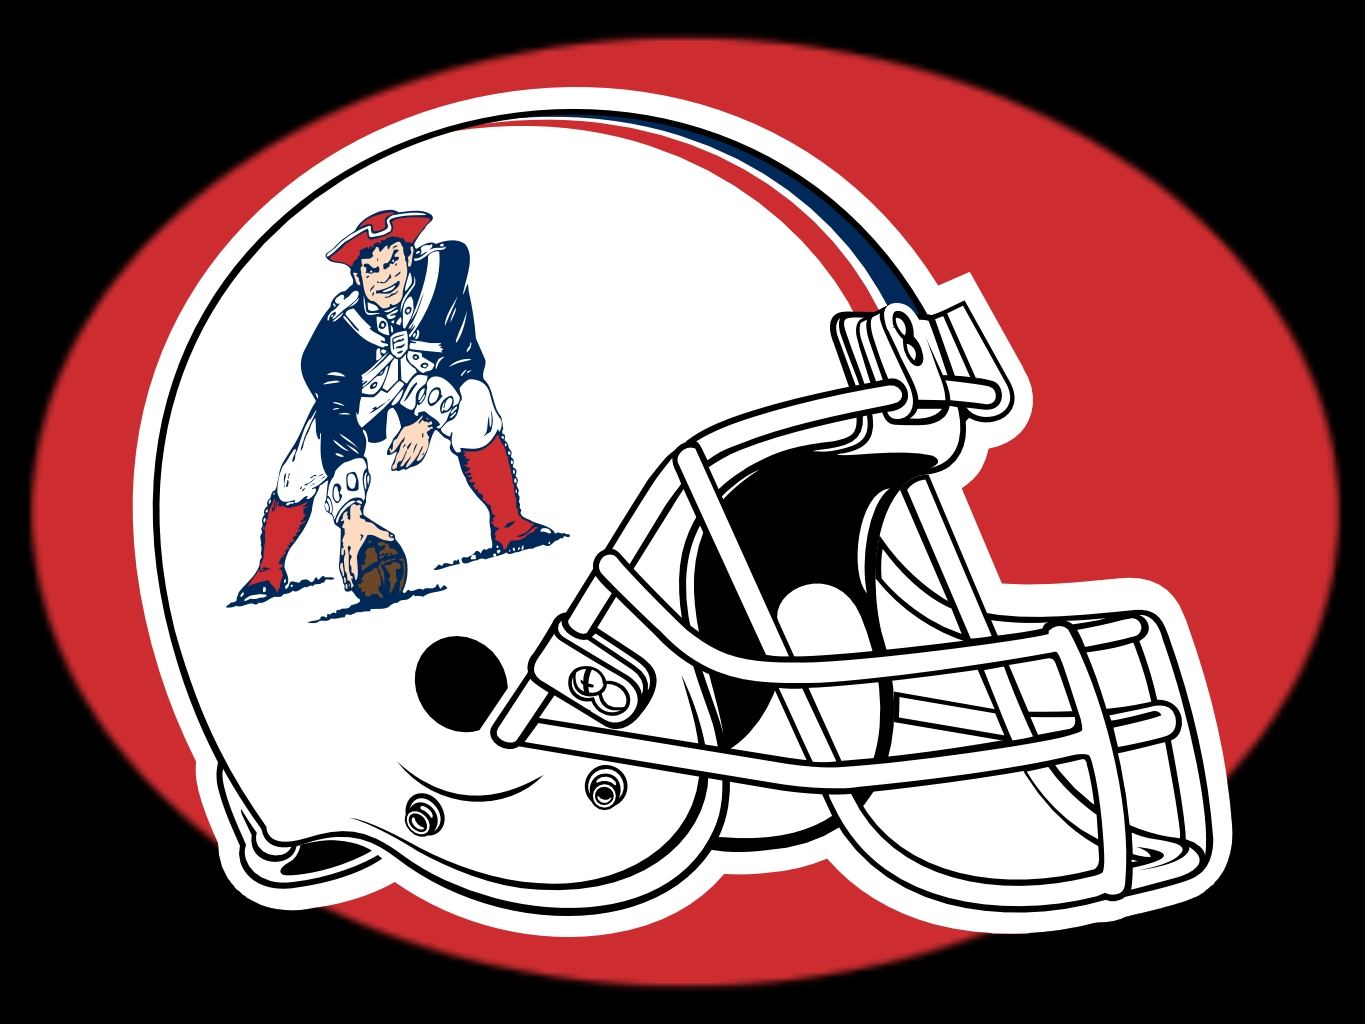 Clipart of New England Patriots Old Logo image in Vector cliparts category at pixy.org